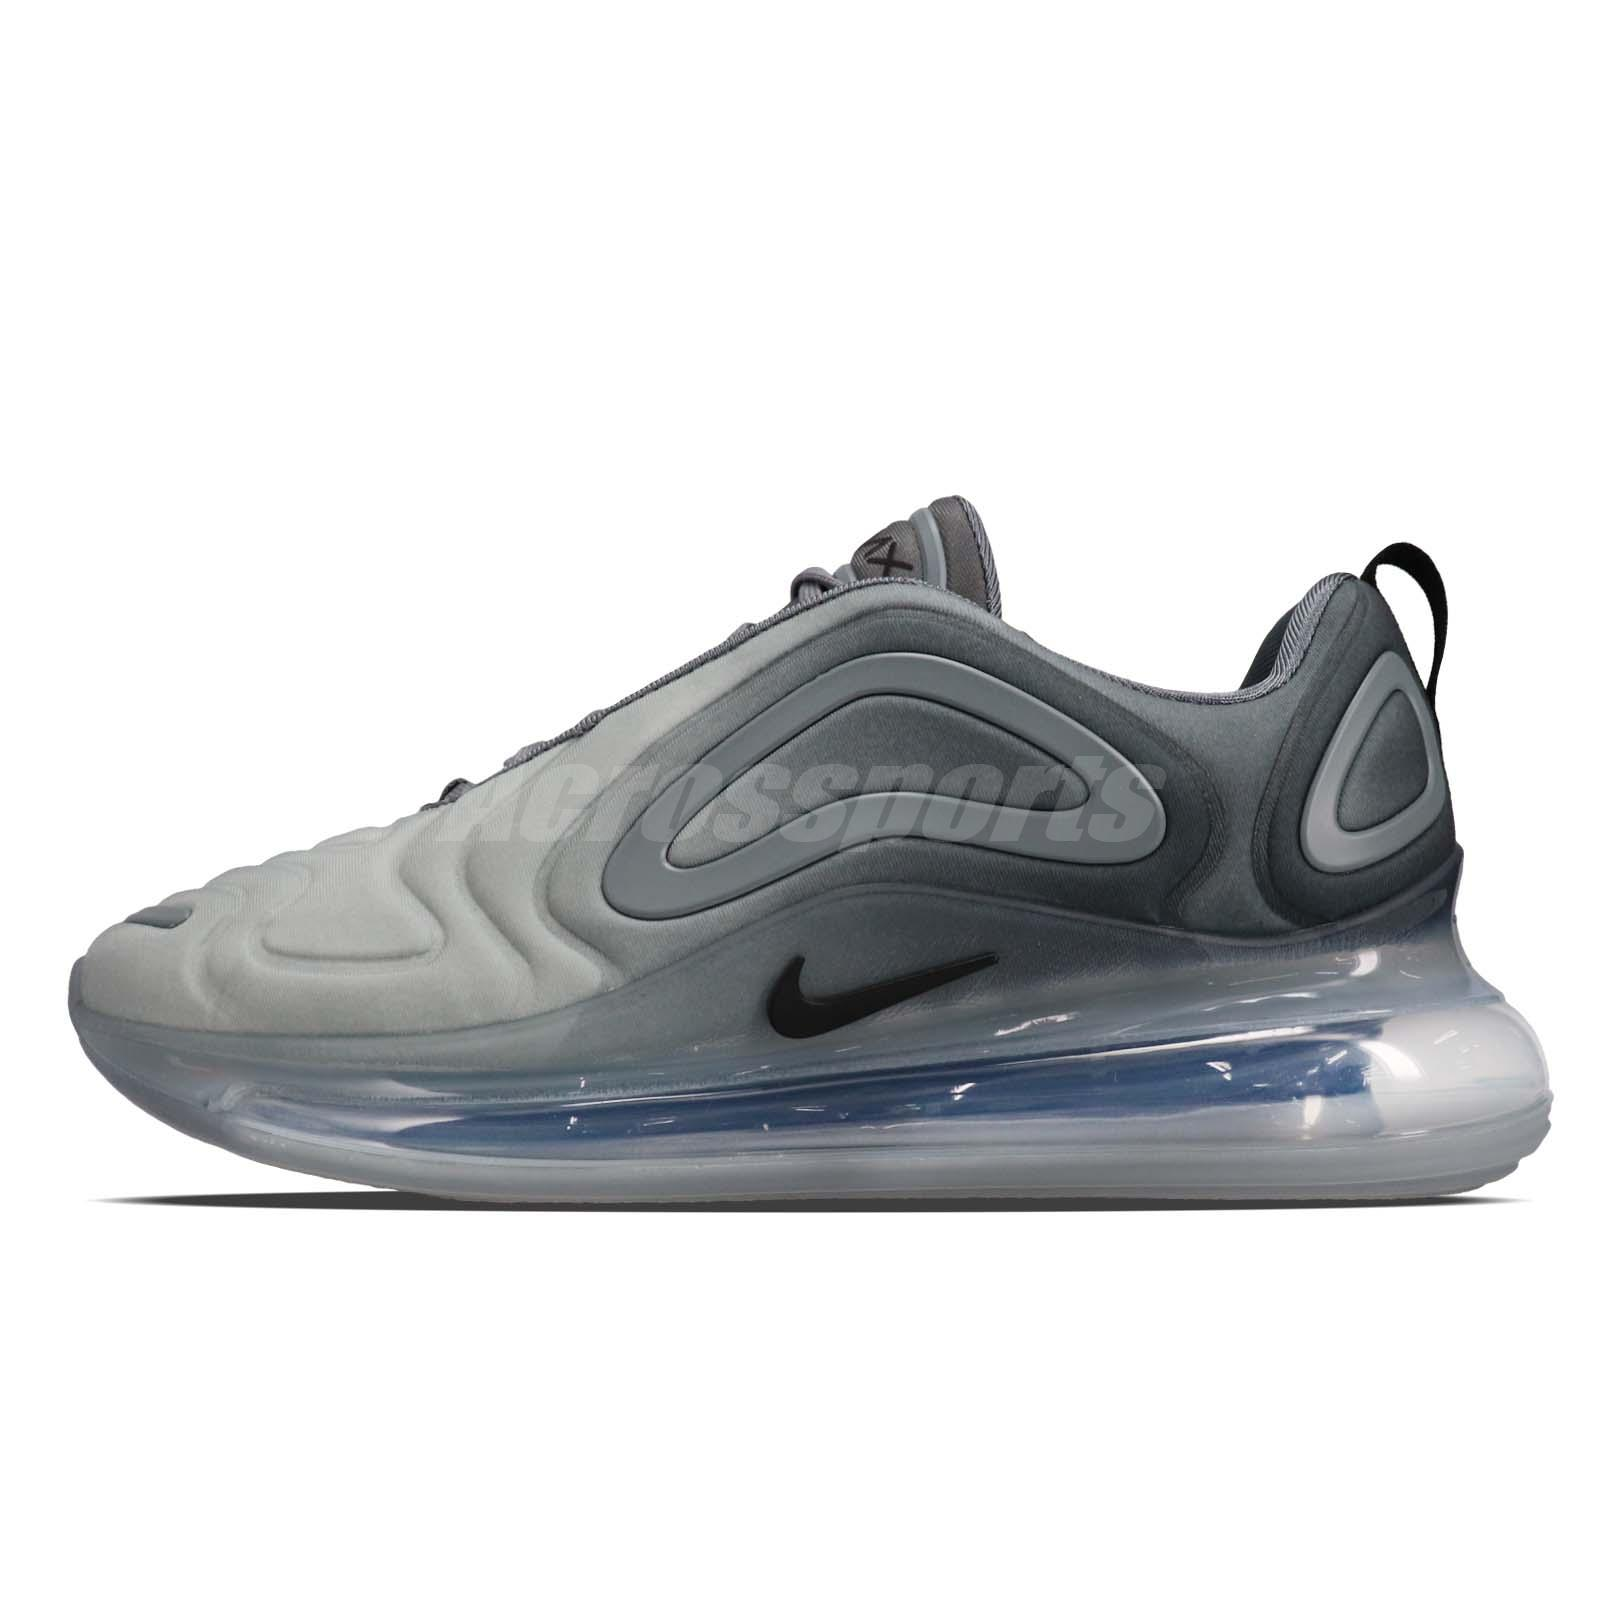 Details about Nike Air Max 720 Grey Black Men Running Casual Lifestyle Shoe Sneaker AO2924 002